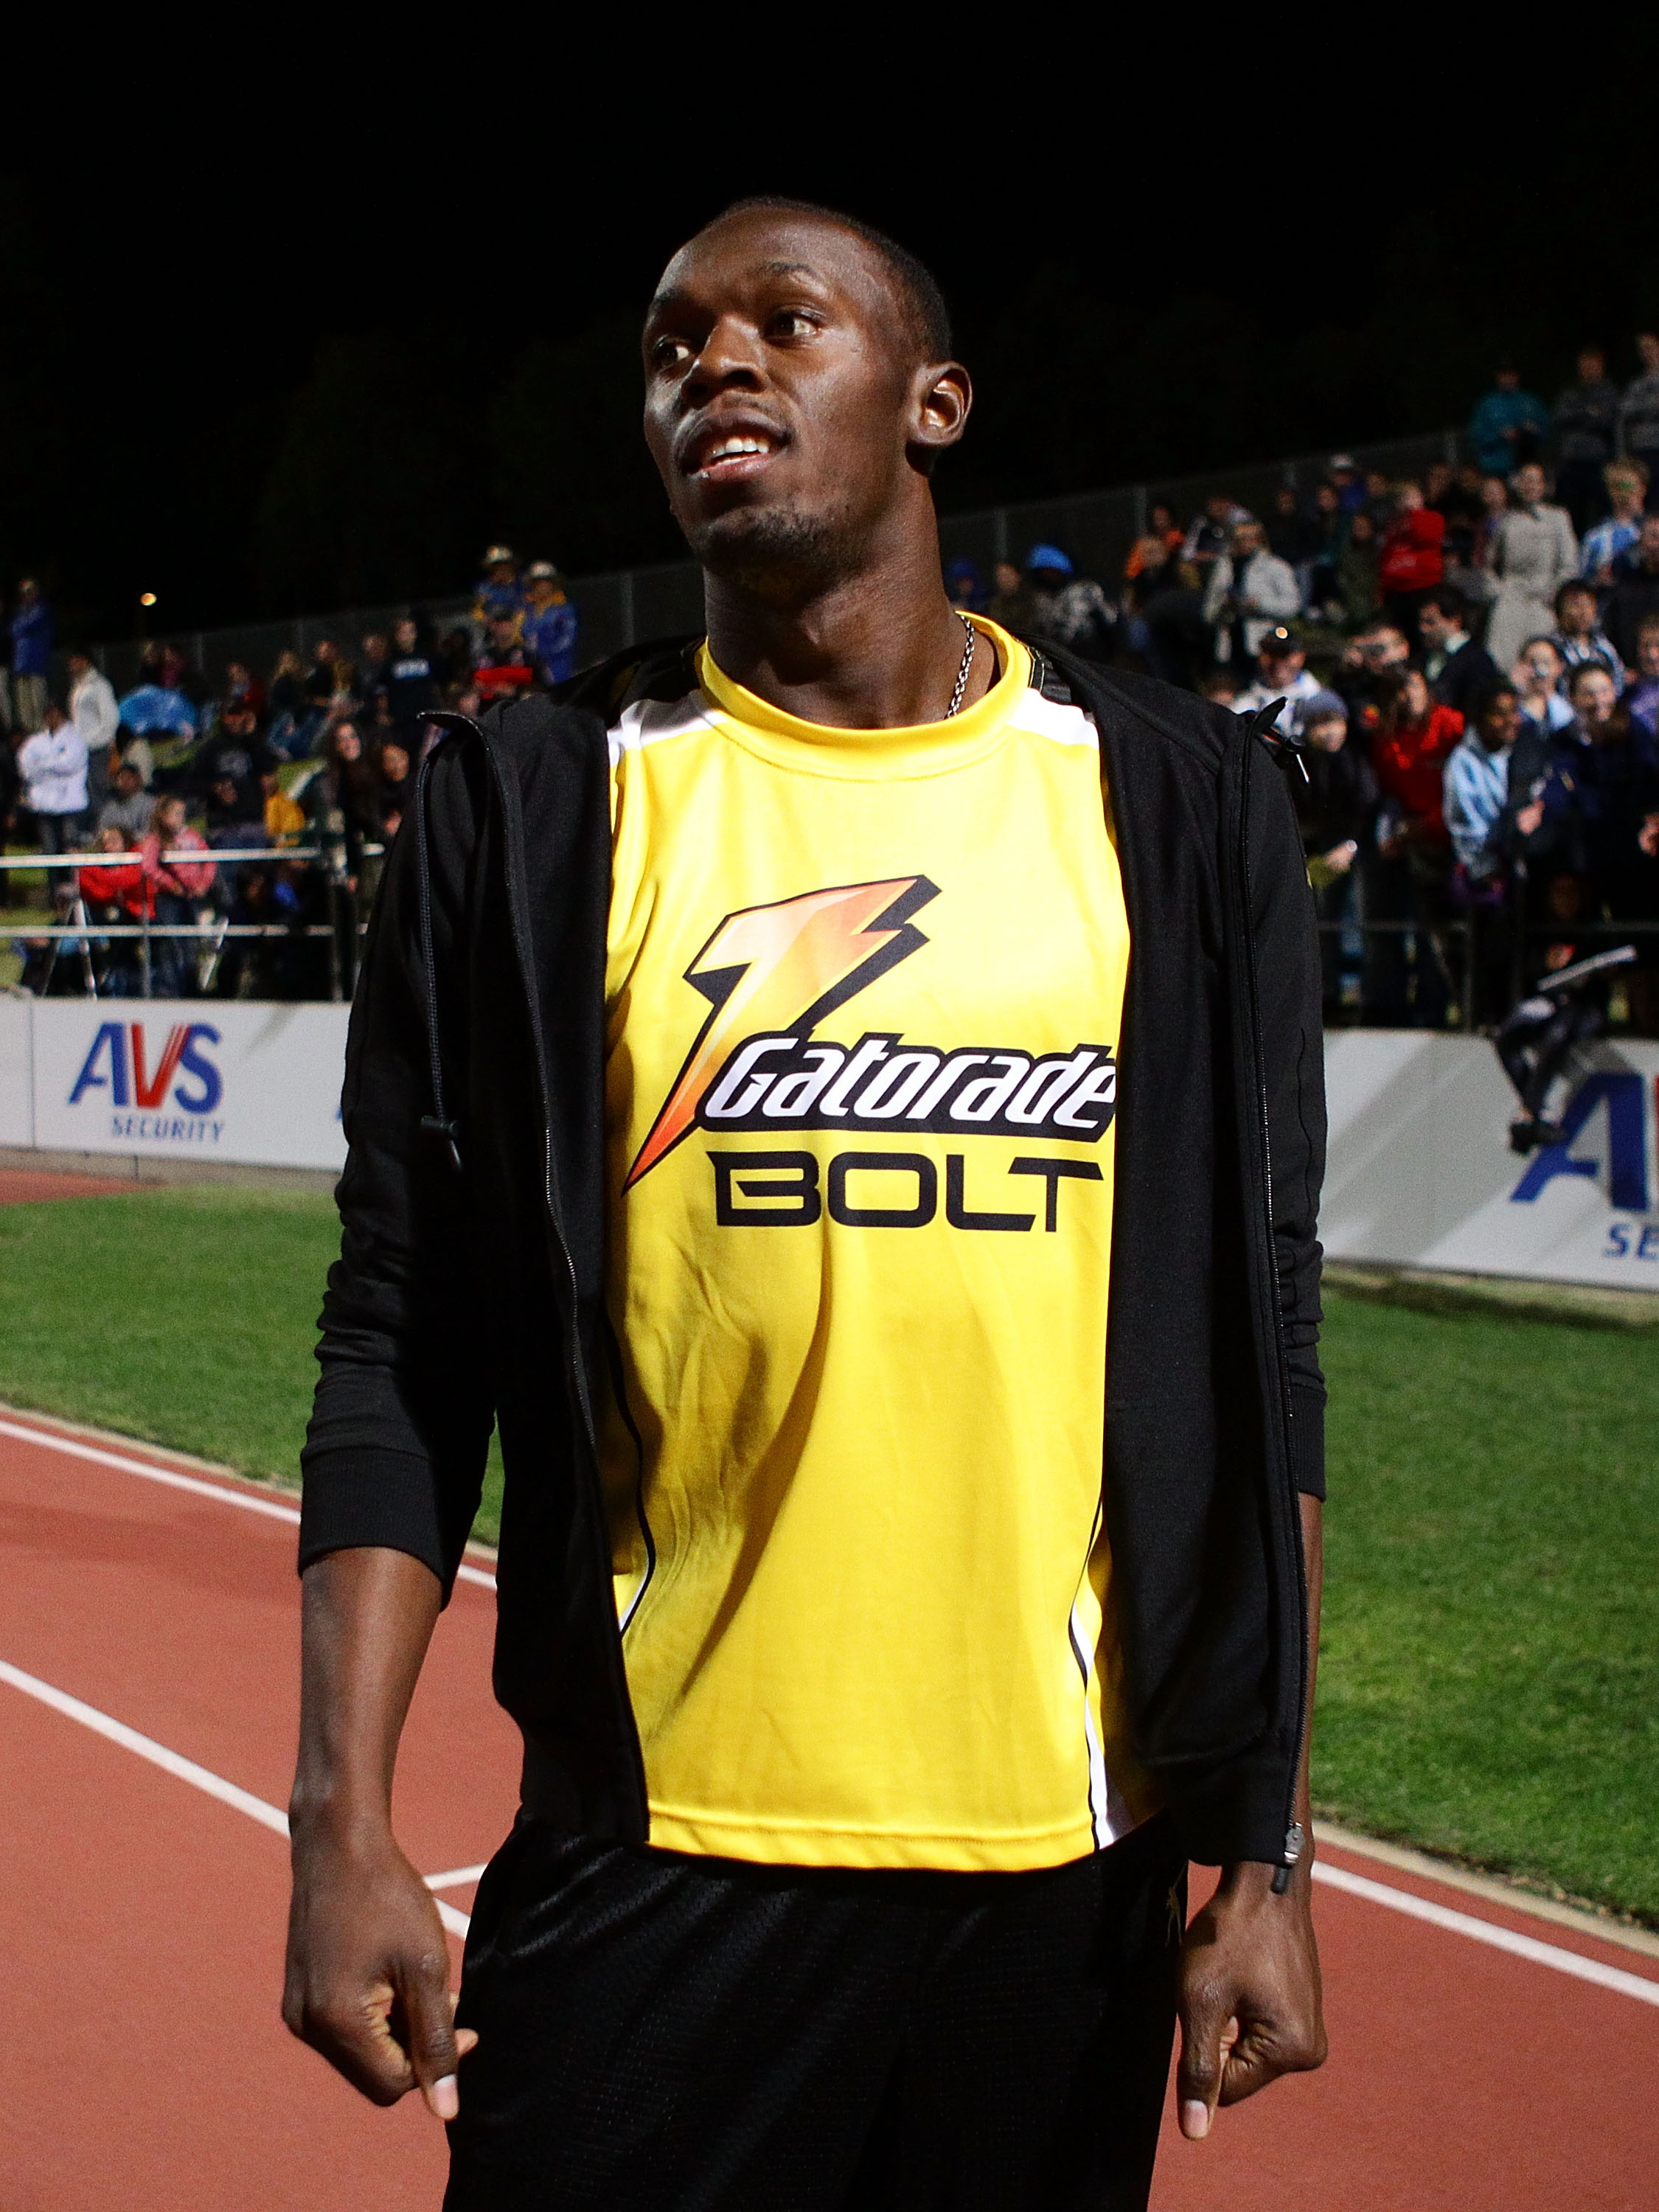 SYDNEY, AUSTRALIA - SEPTEMBER 15:  Usain Bolt of Jamaica acknowledges the crowd during the Athletic Allstars Meet at Sydney Olympic Park Athletic Centre on September 15, 2010 in Sydney, Australia.  (Photo by Matt King/Getty Images)